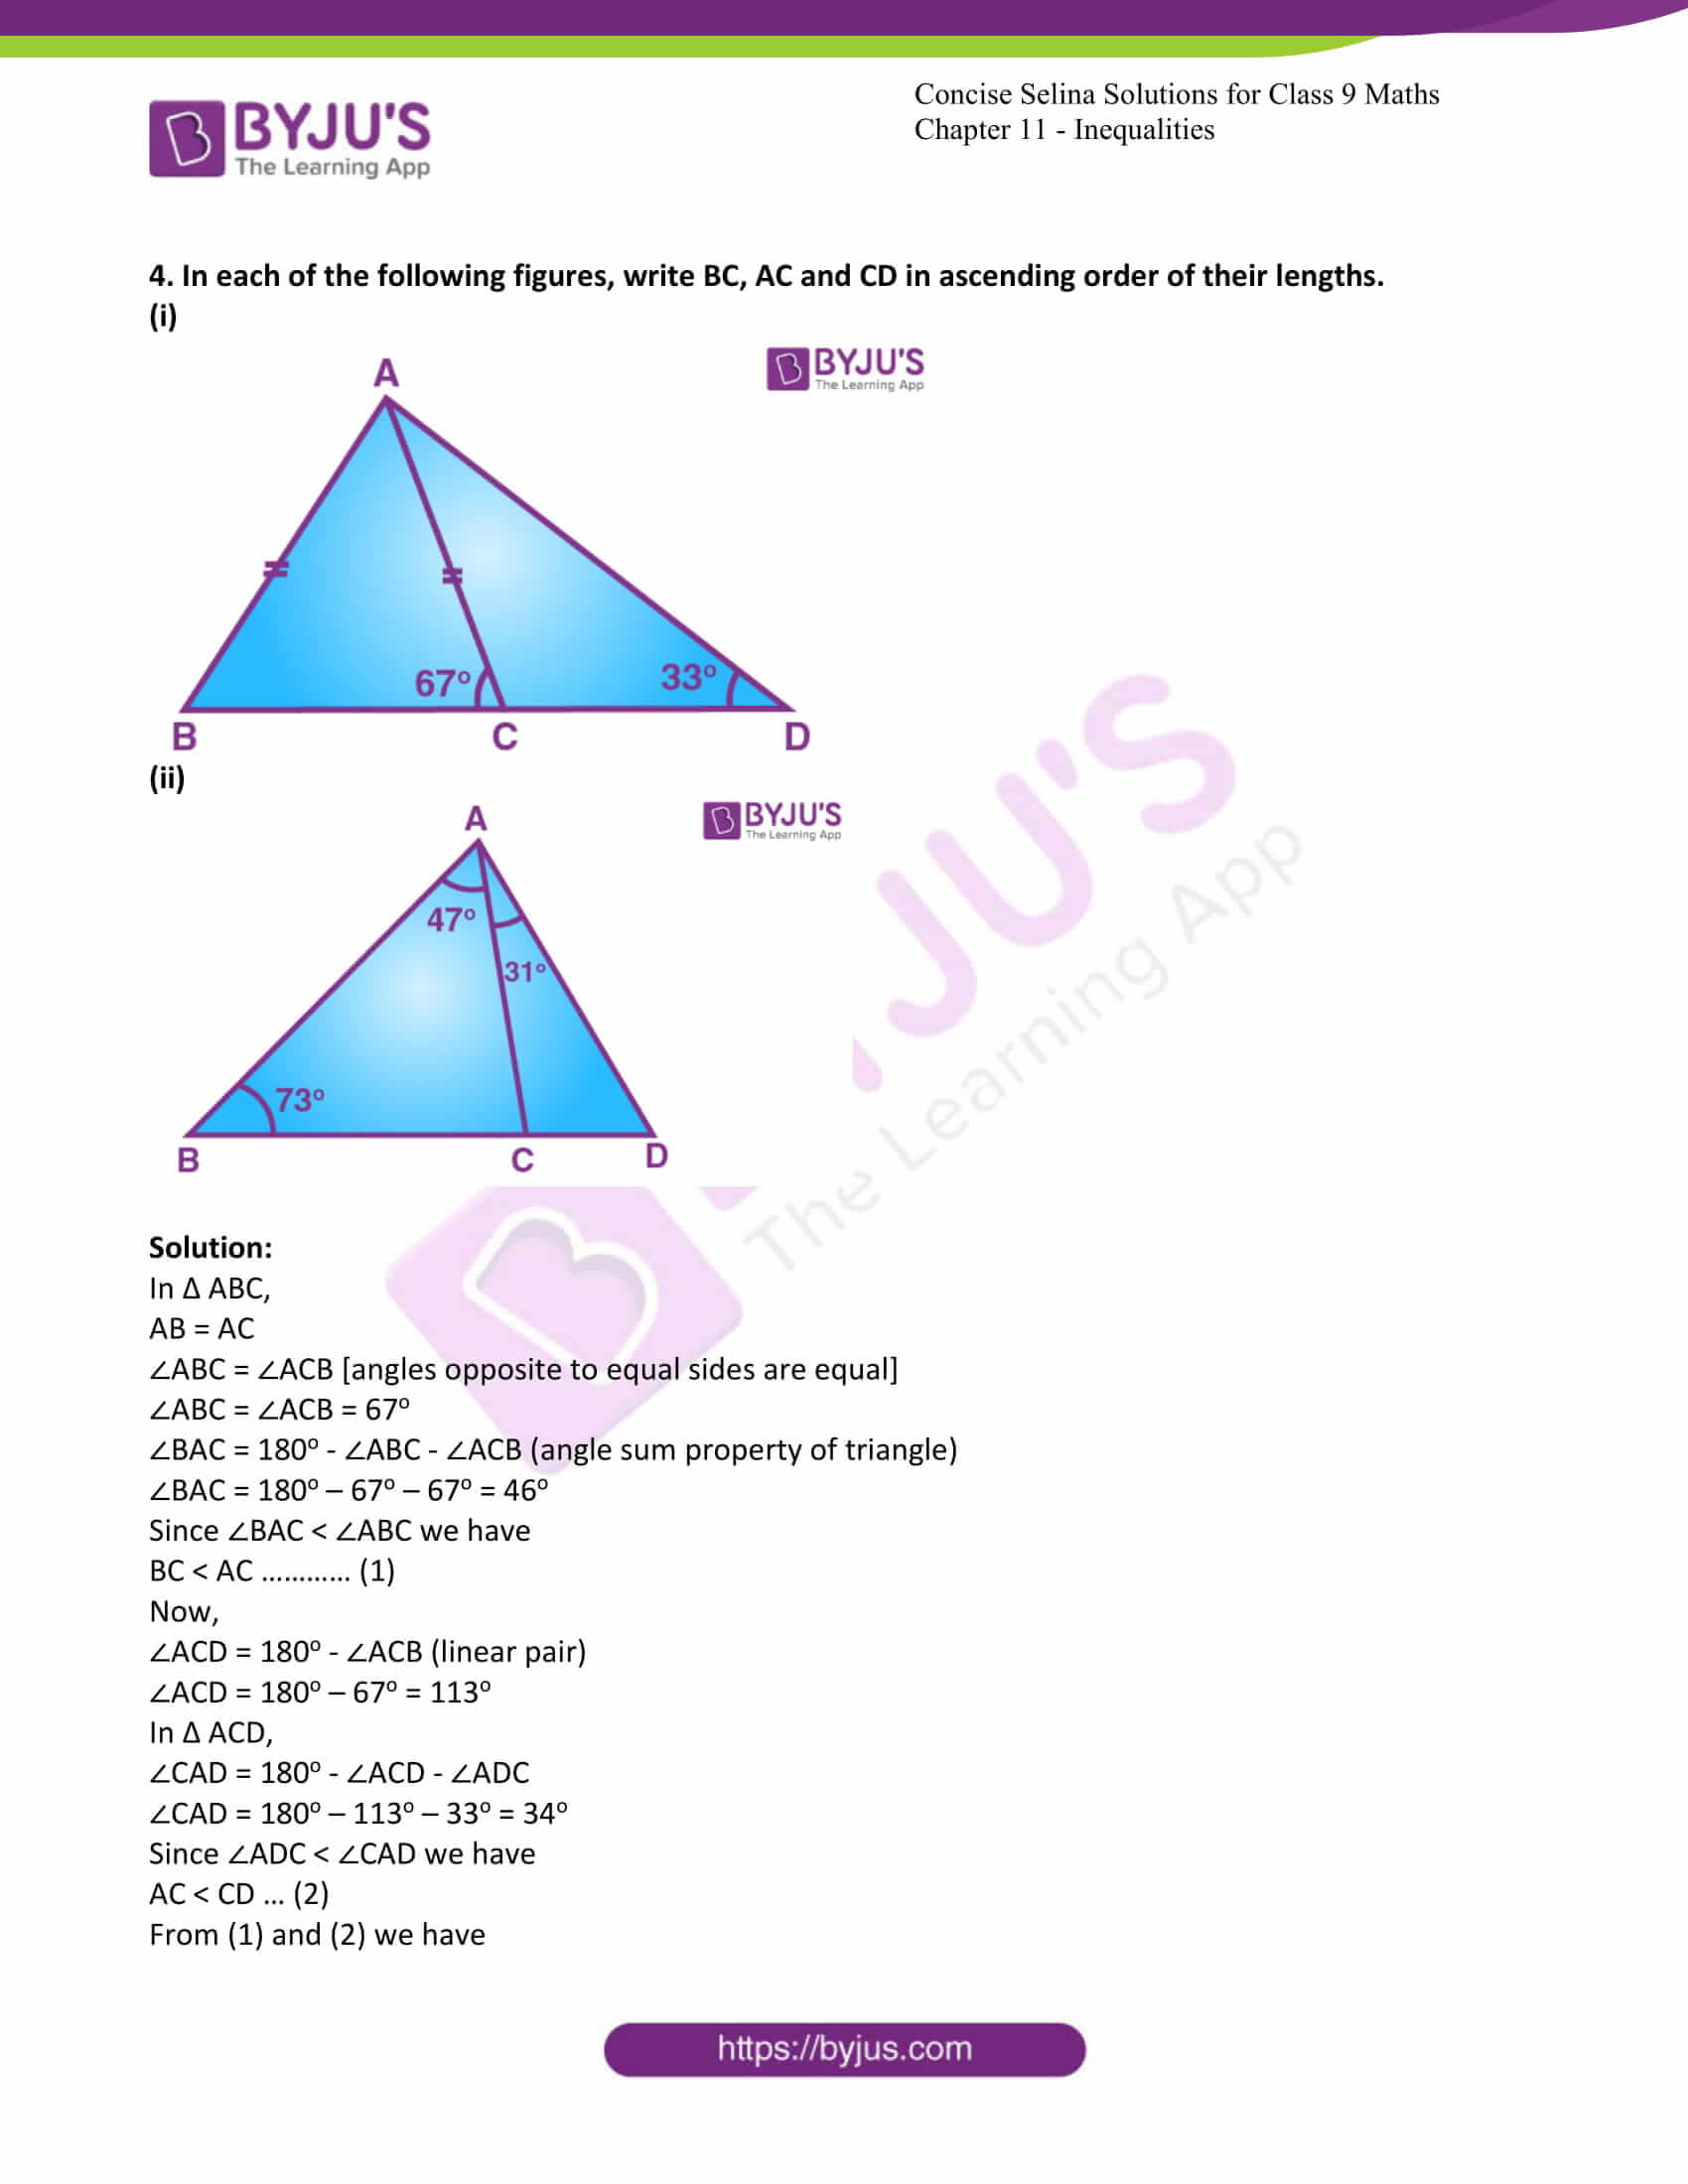 icse class 9 maths may10 selina solutions chapter 11 inequalities 03